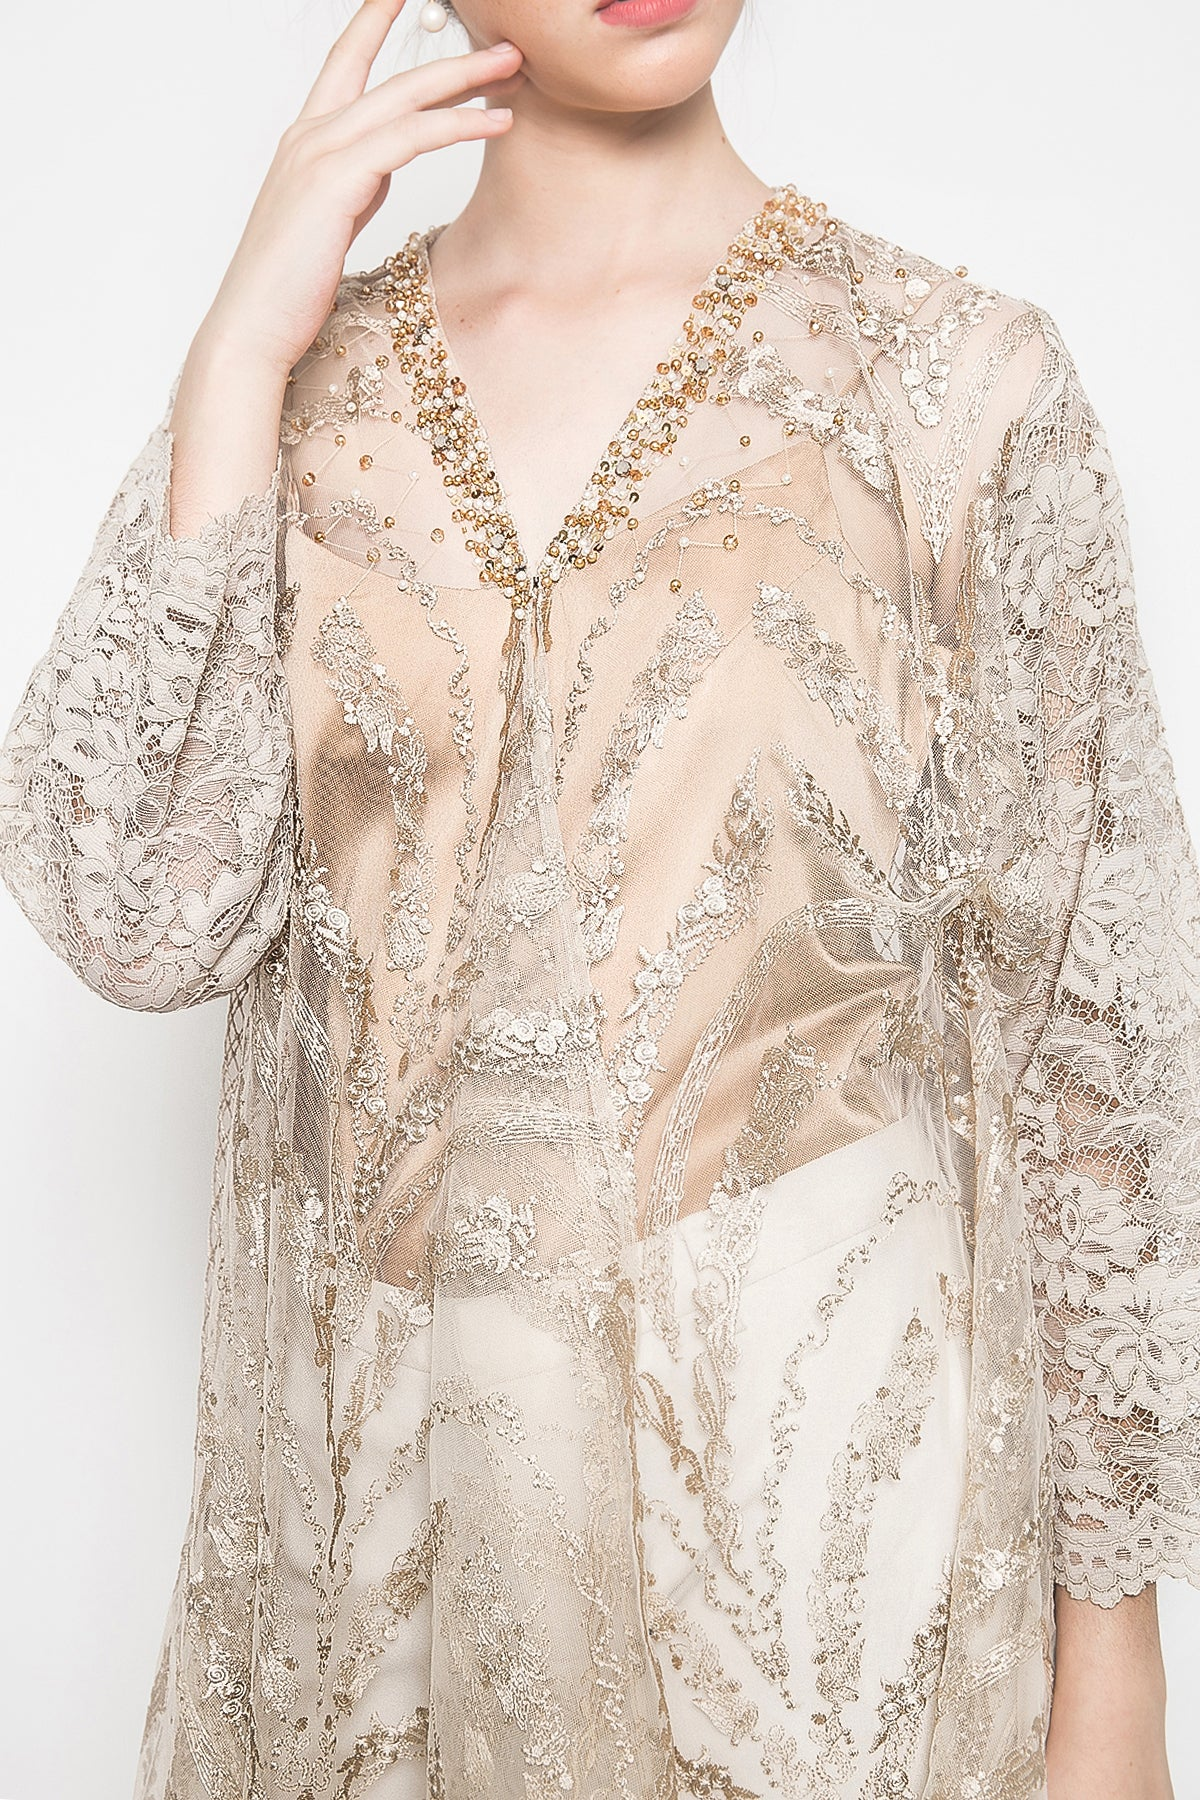 MiIly Outer in Gold